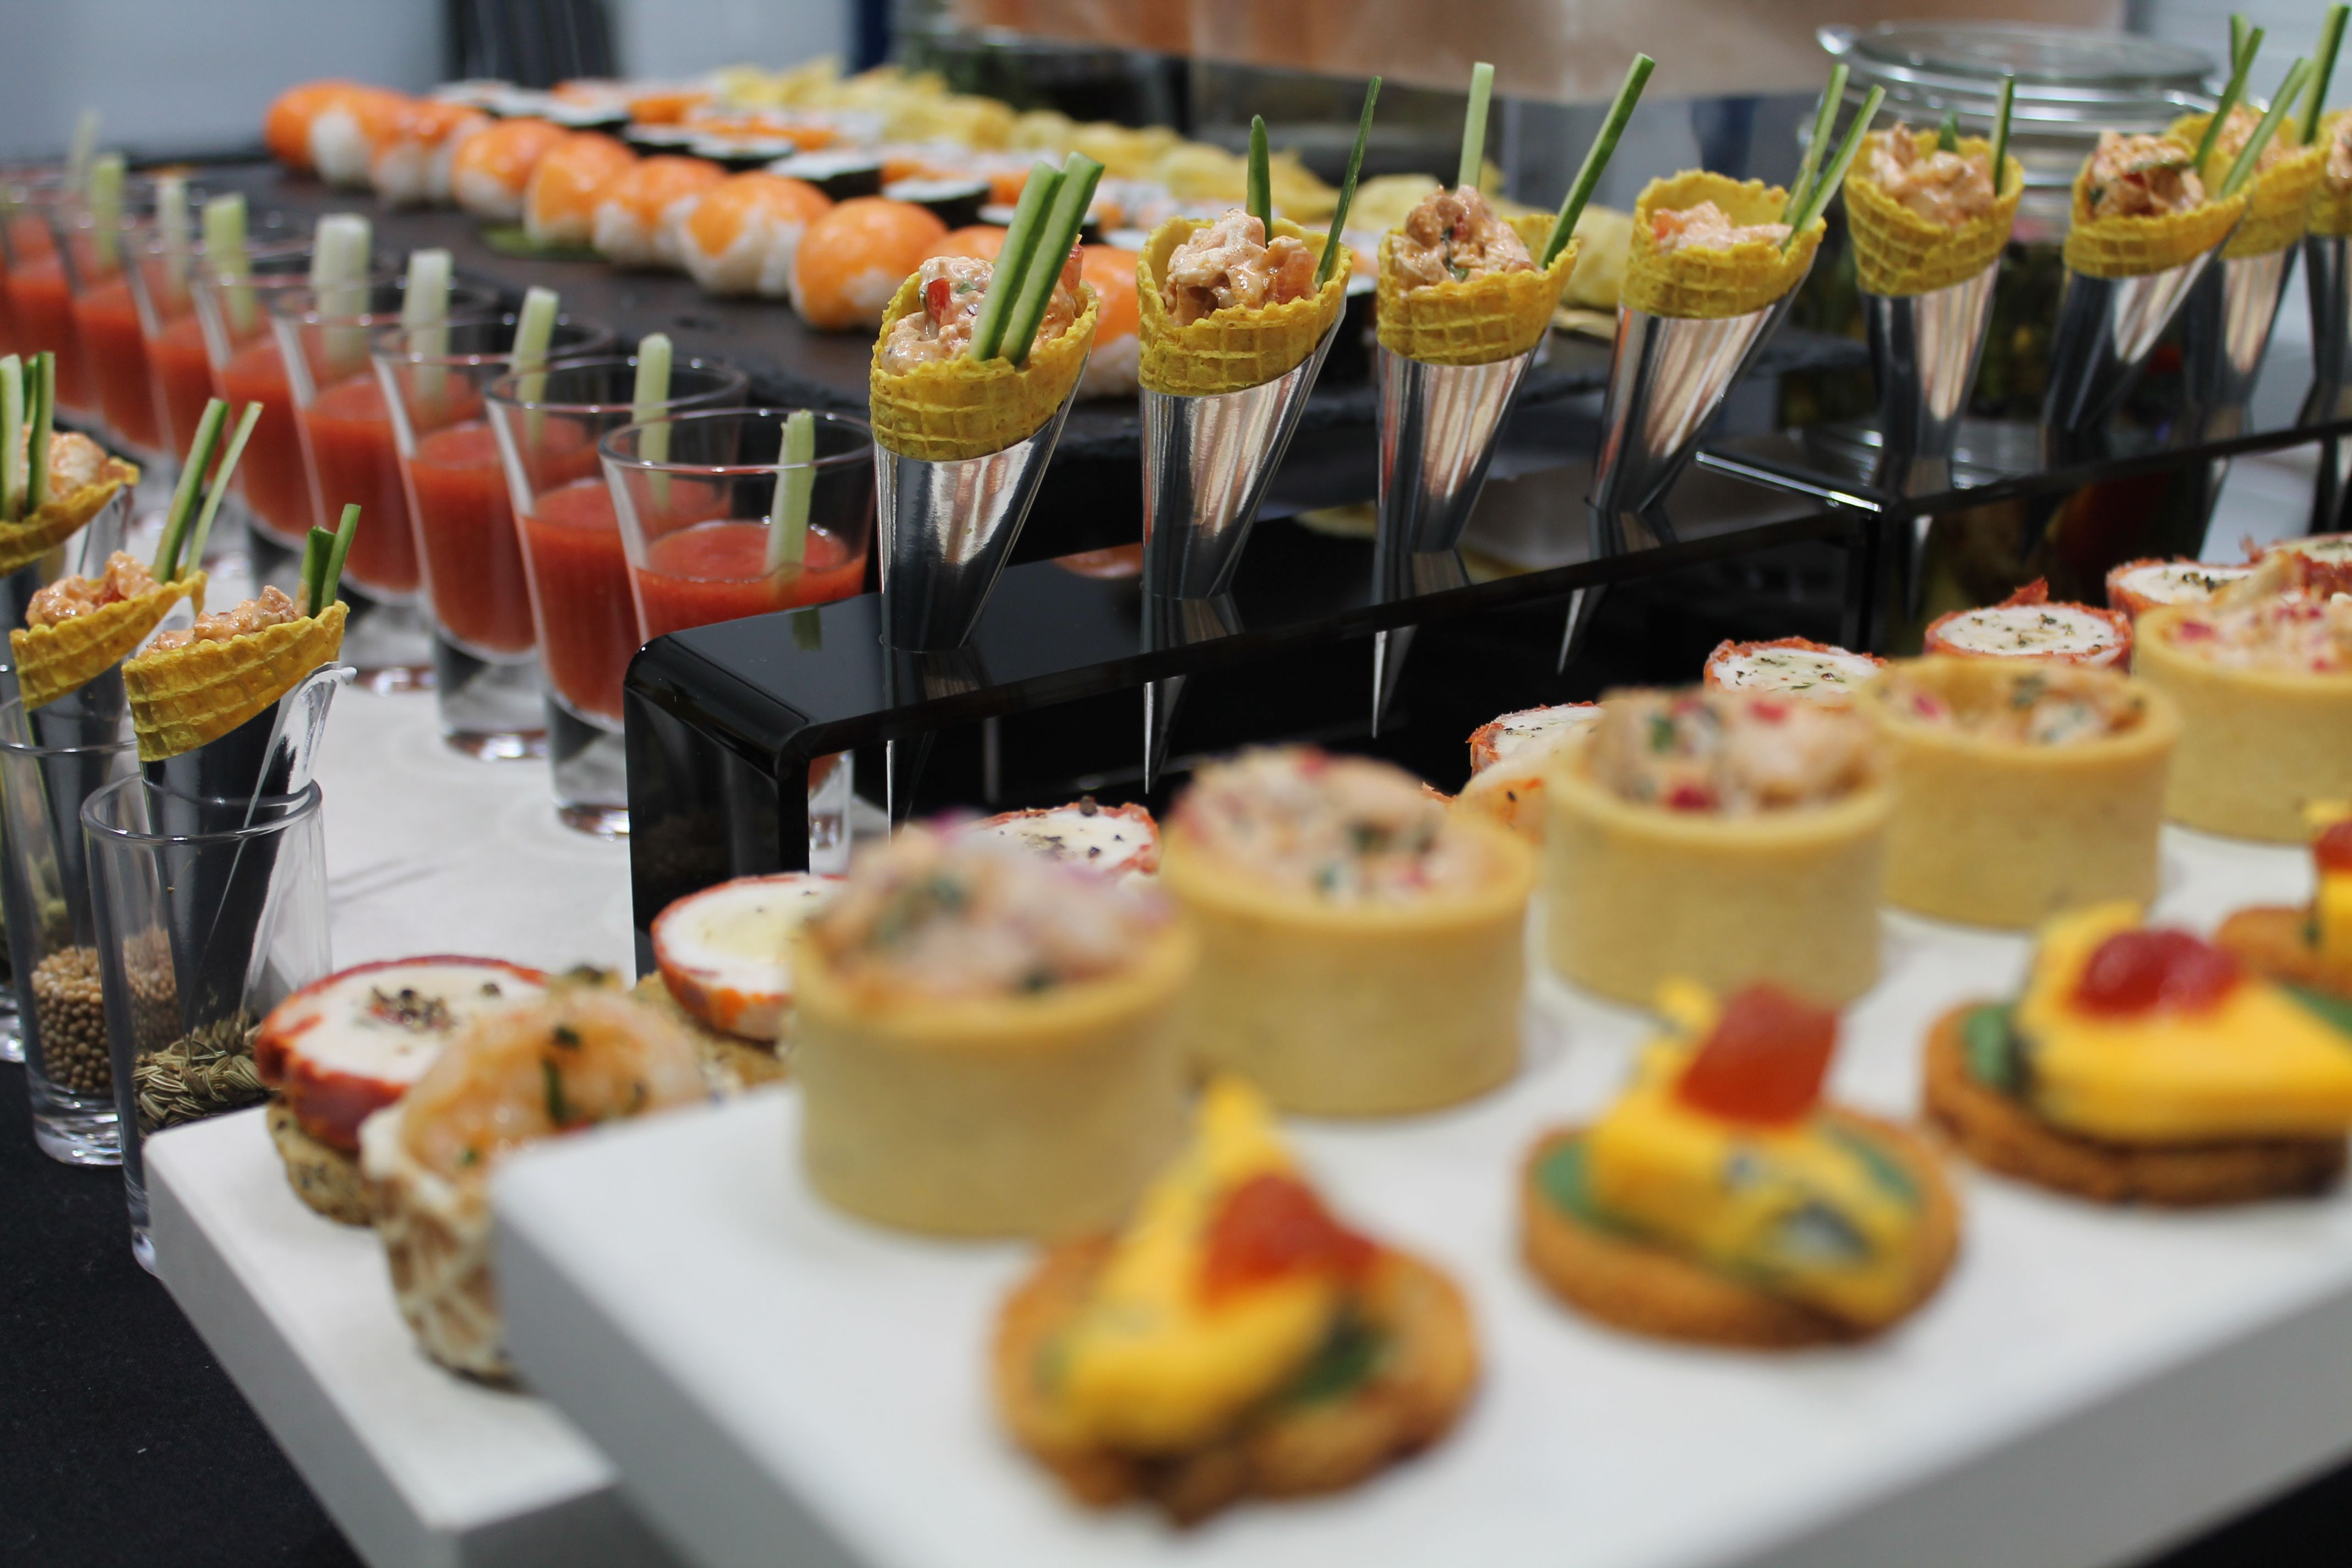 Canap s sushi and curry cones wirral gourmet food for Wedding canape ideas